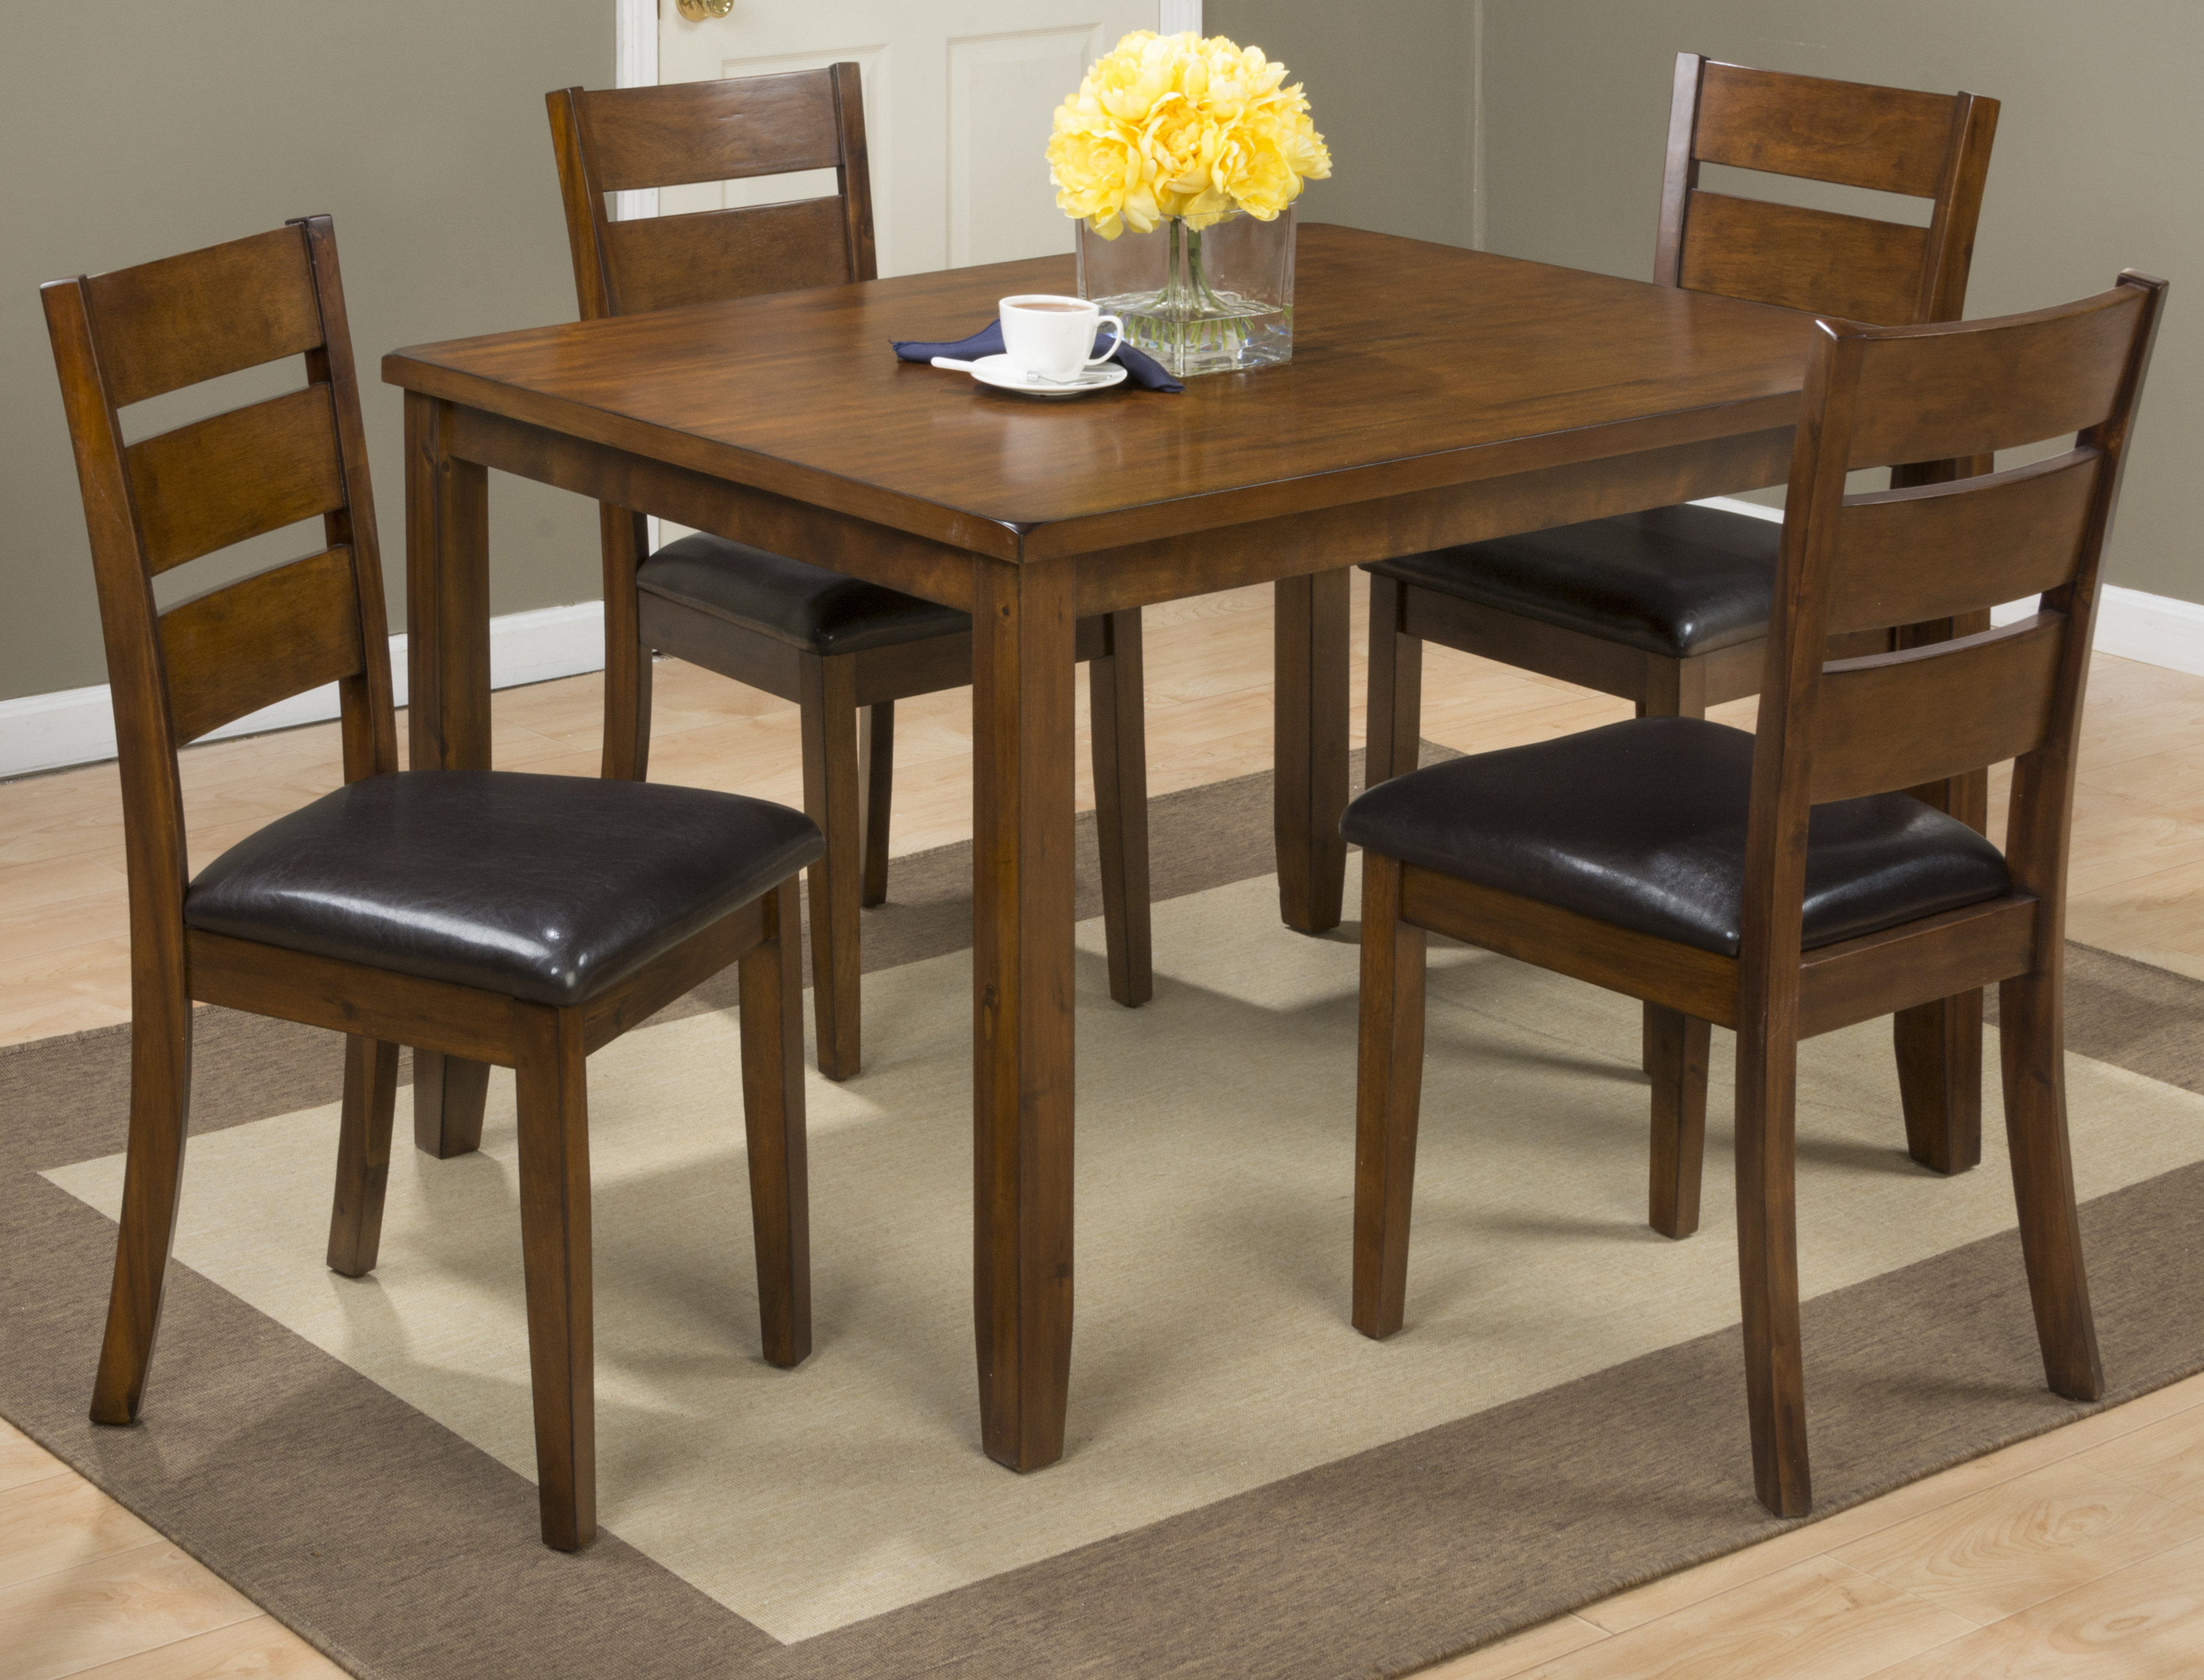 Amir 5 Piece Solid Wood Dining Set Regarding Most Popular Hanska Wooden 5 Piece Counter Height Dining Table Sets (Set Of 5) (View 8 of 20)